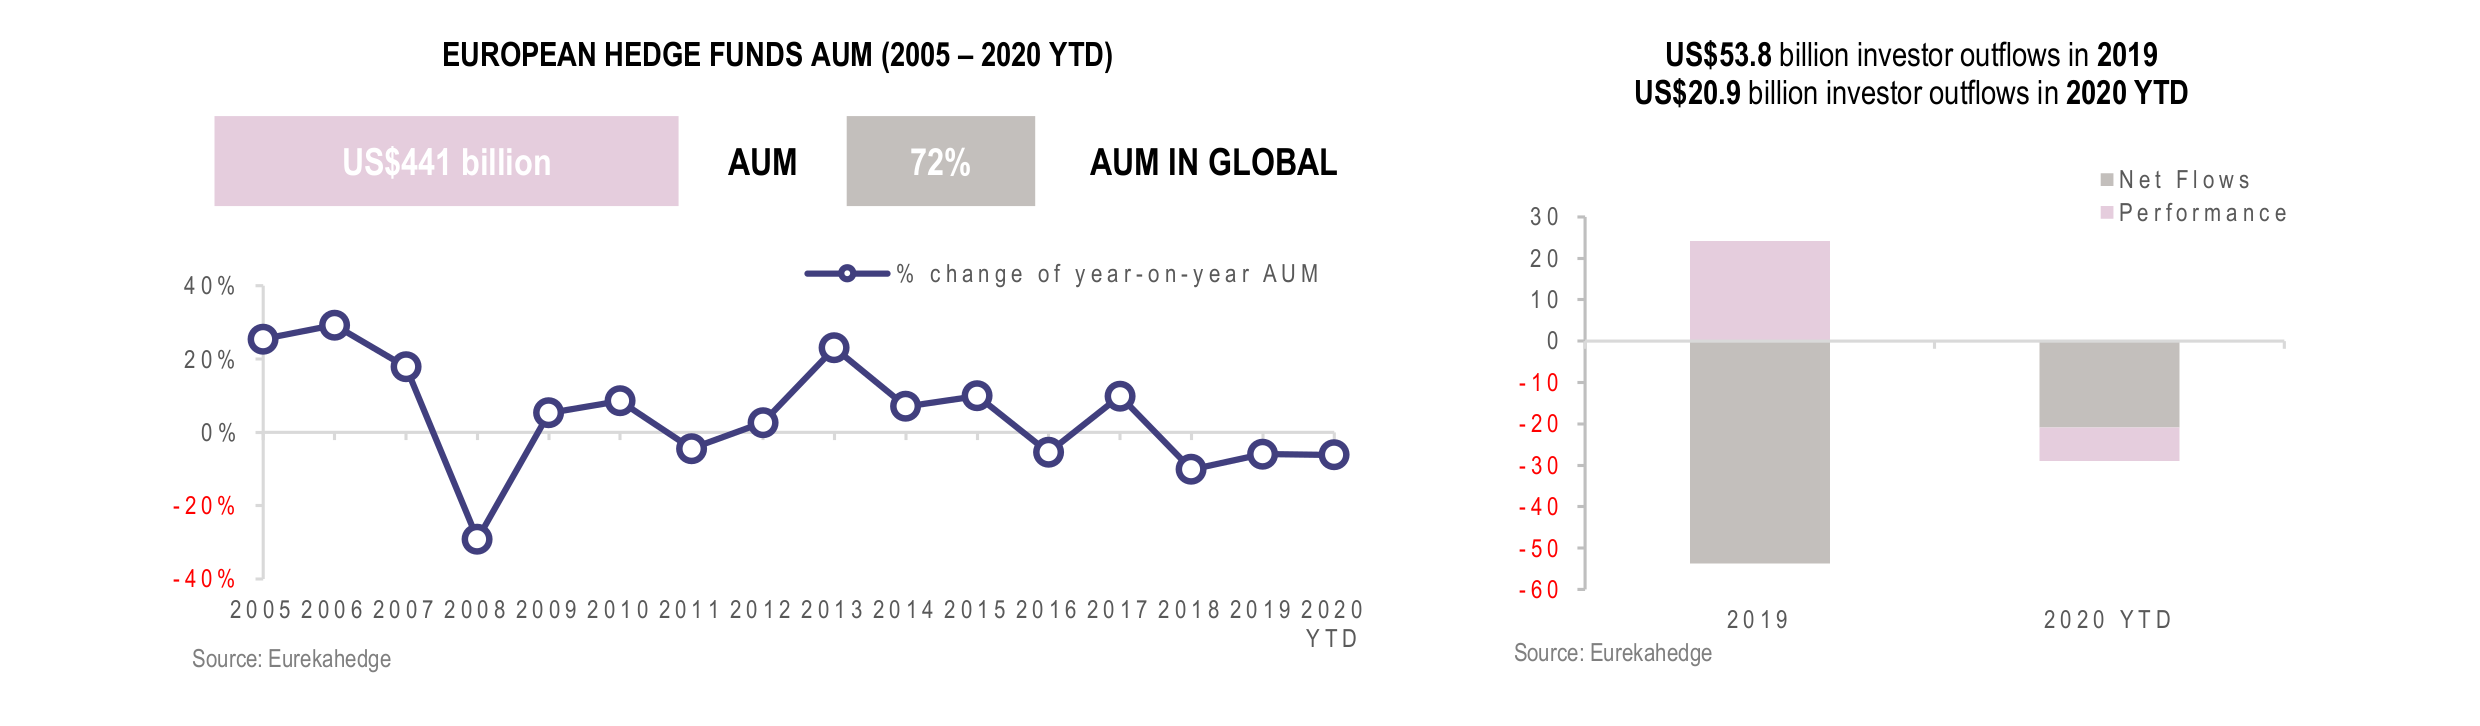 European Hedge Funds Infographic December 2020 - AUM